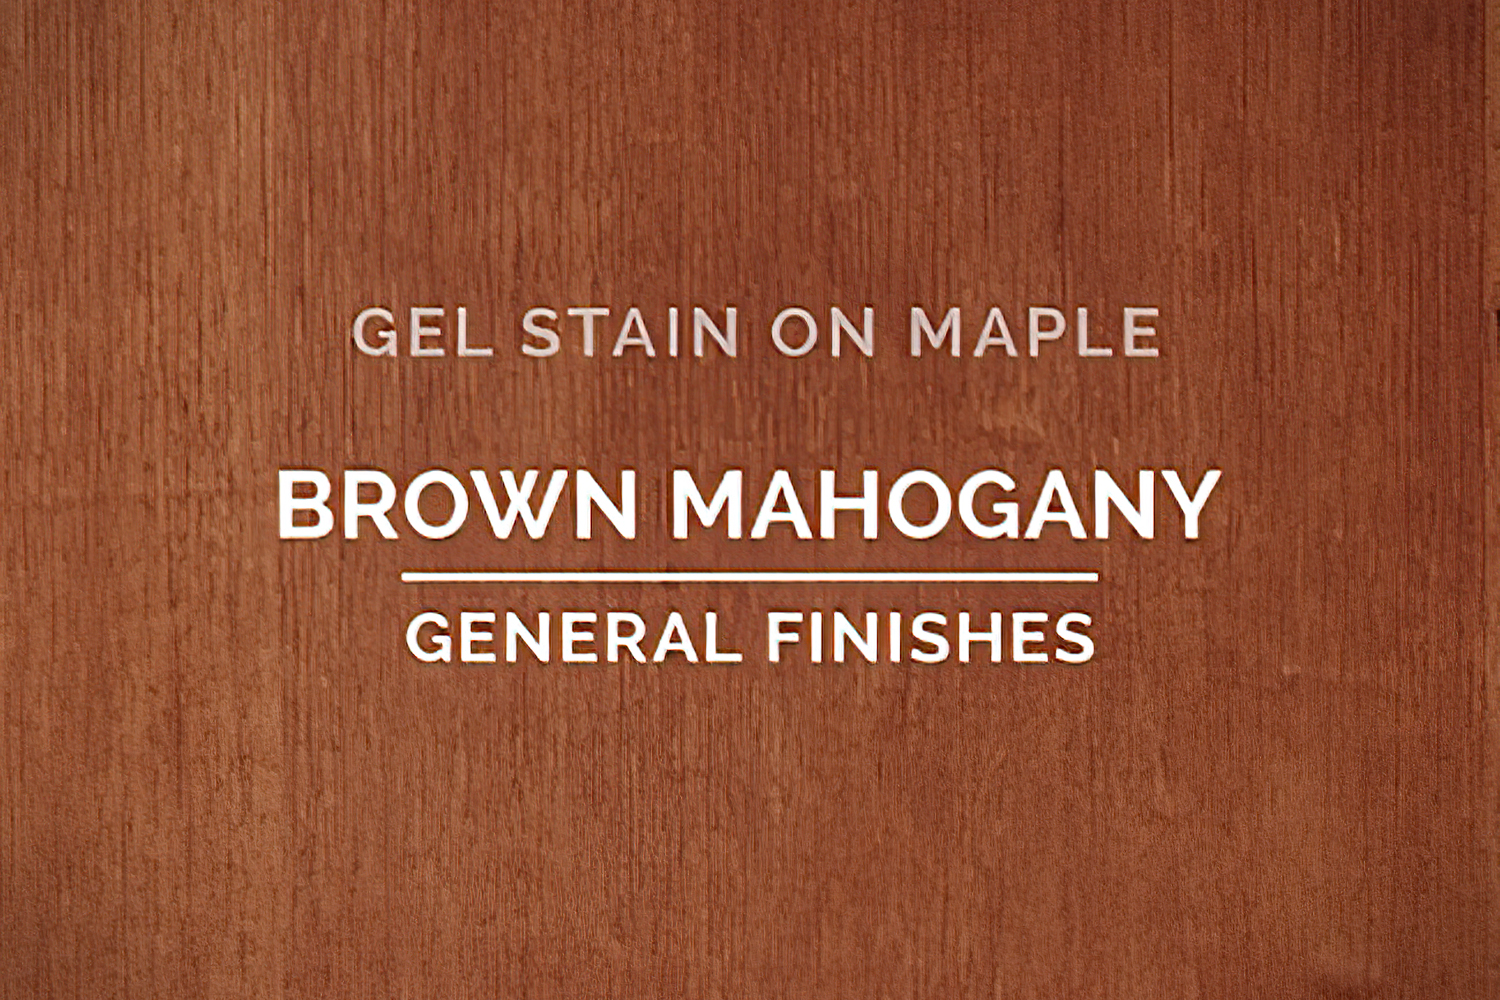 Color Chip Gel Stain Brown Mahogany On Maple General Finishes Copy